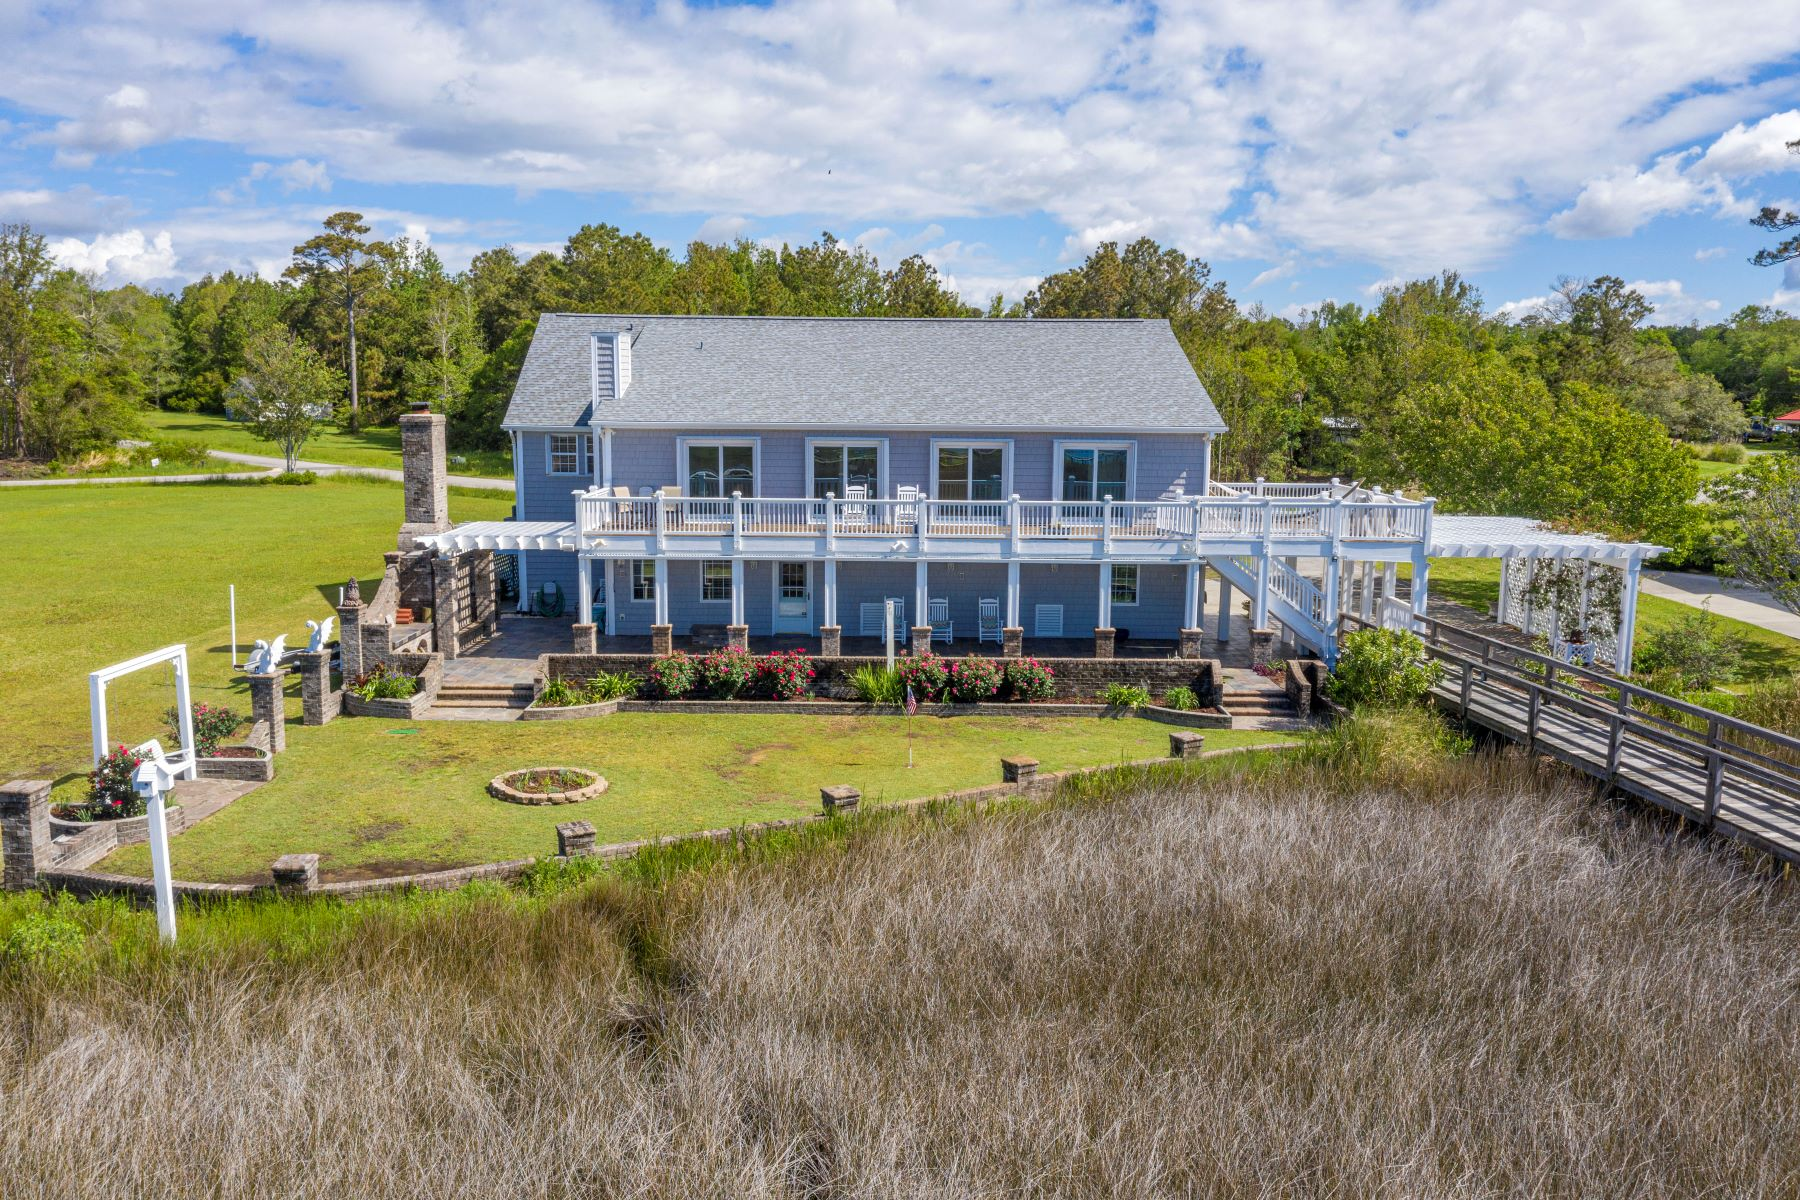 Single Family Homes for Sale at Entertainer's and Gardener's Dream Home 205 Topsail Watch Drive Hampstead, North Carolina 28443 United States